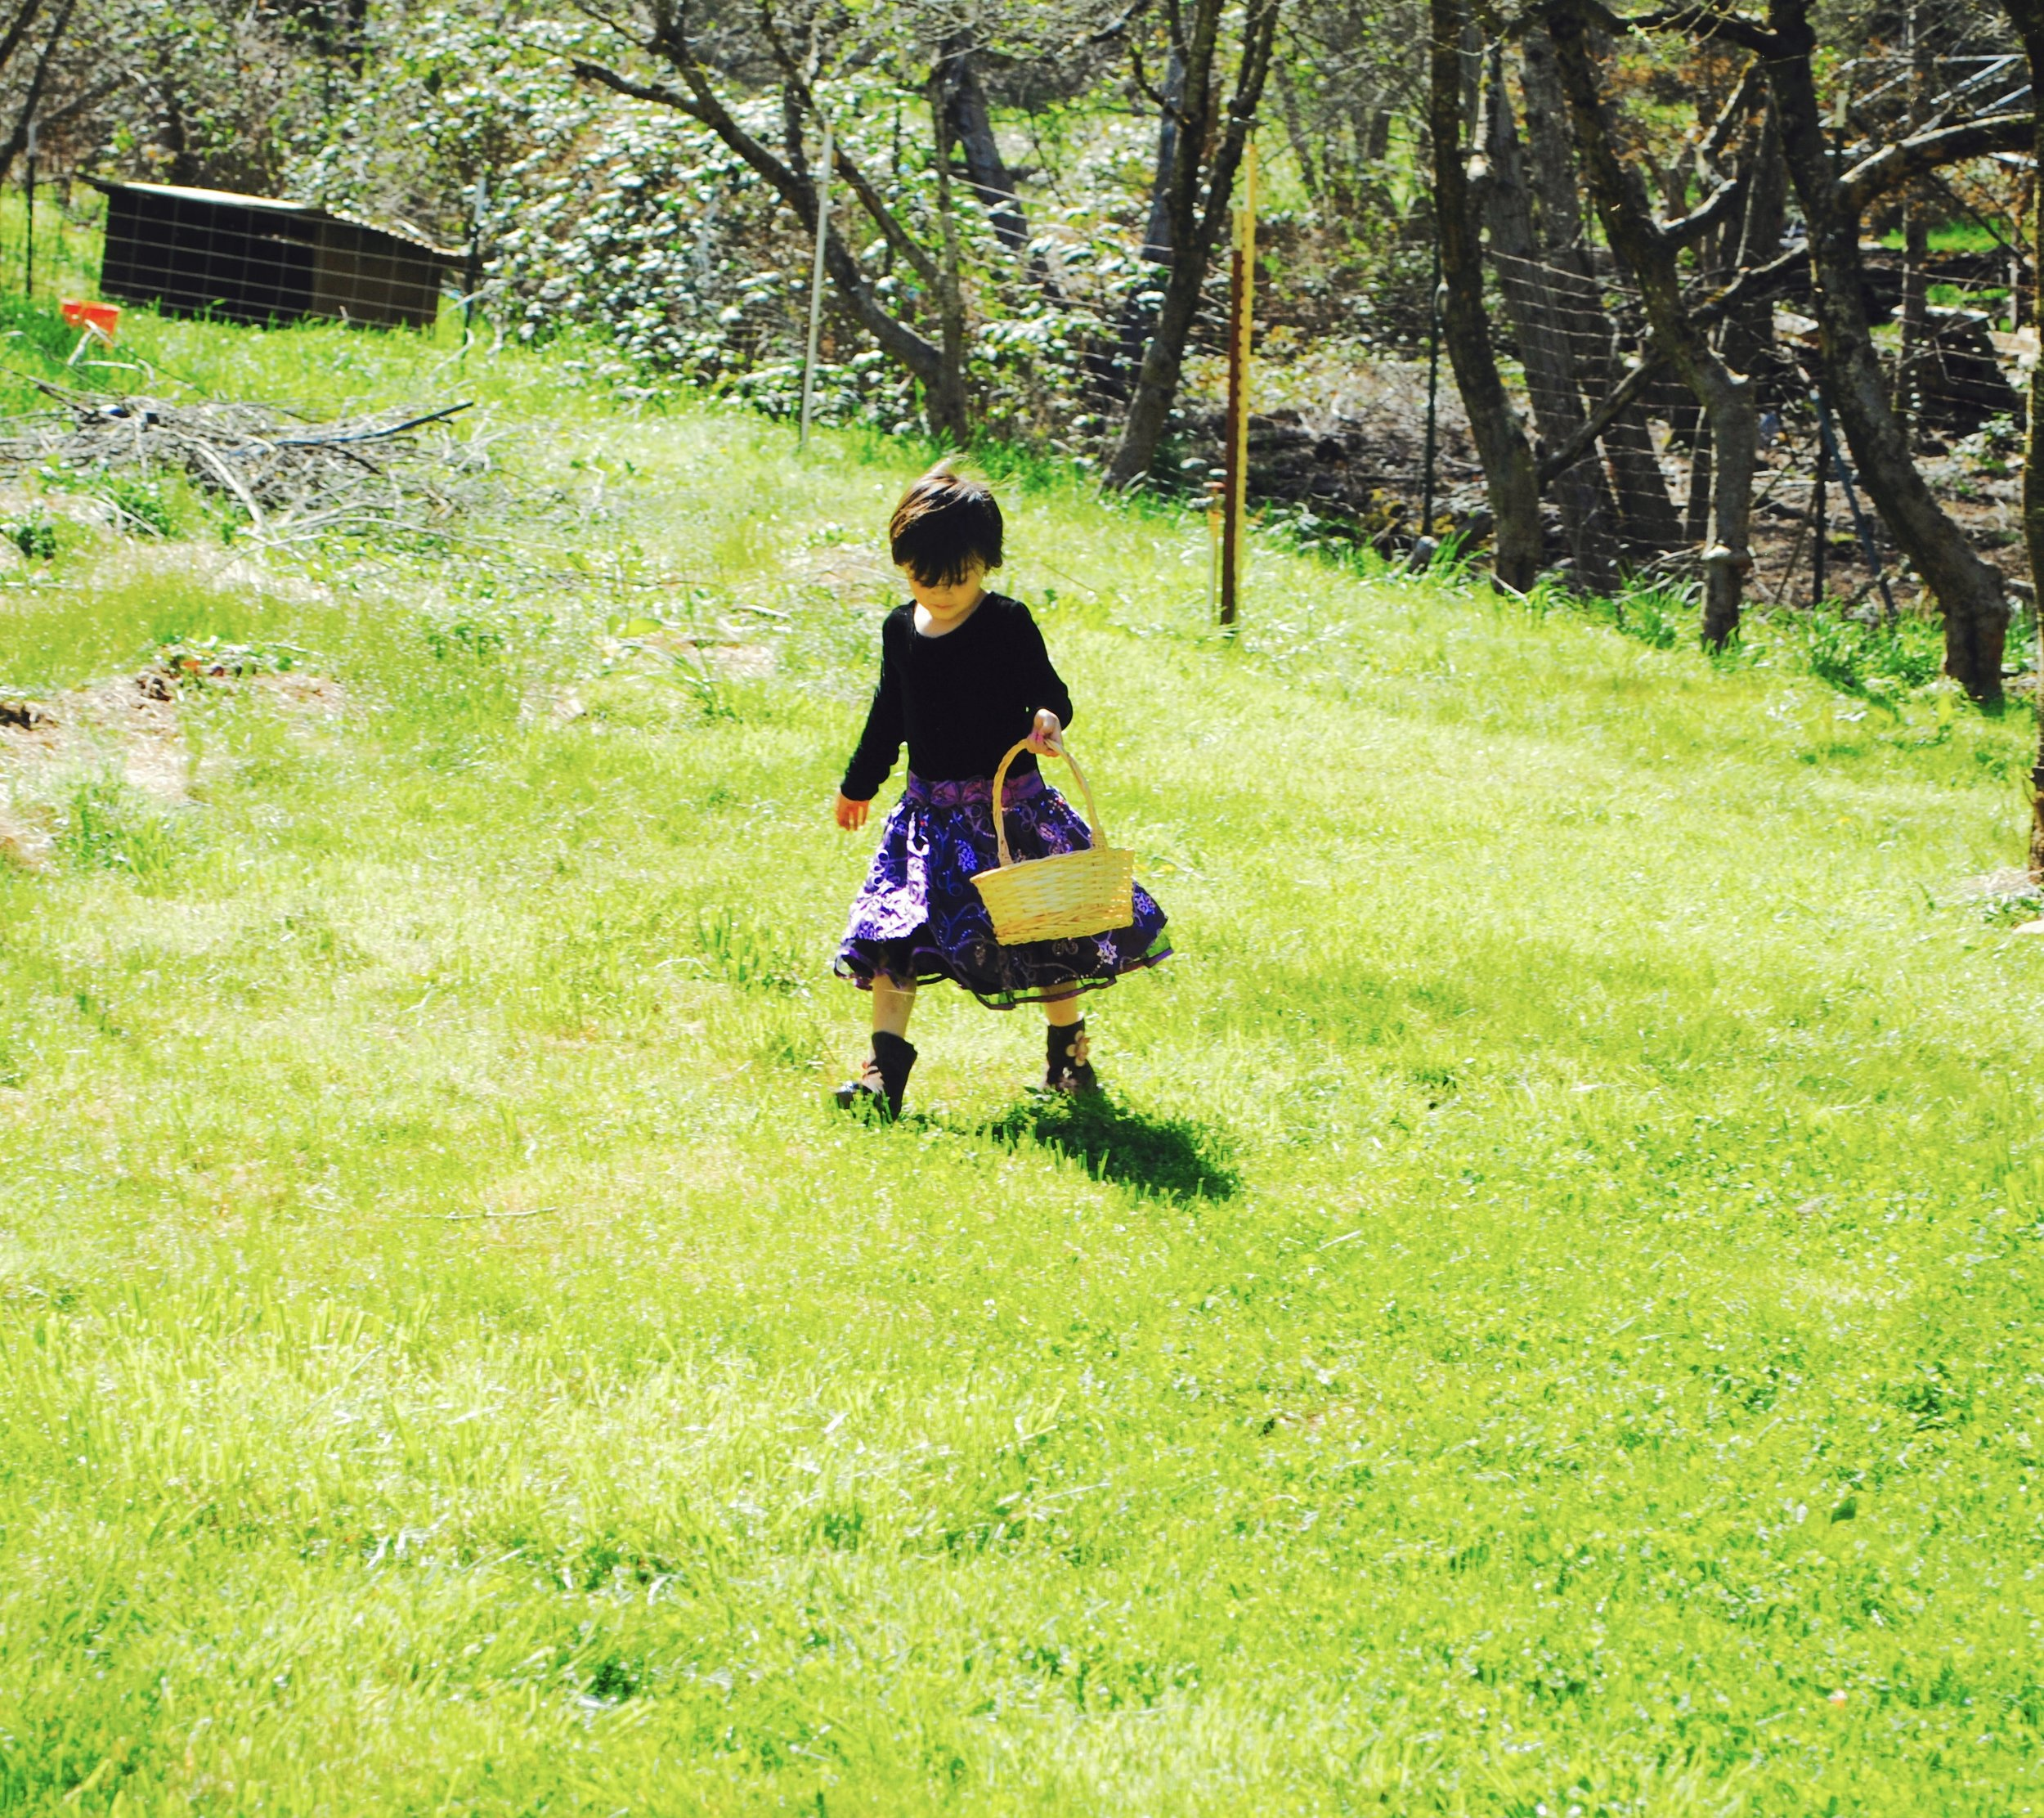 Lola wore her favorite fancy frock and sturdy boots.